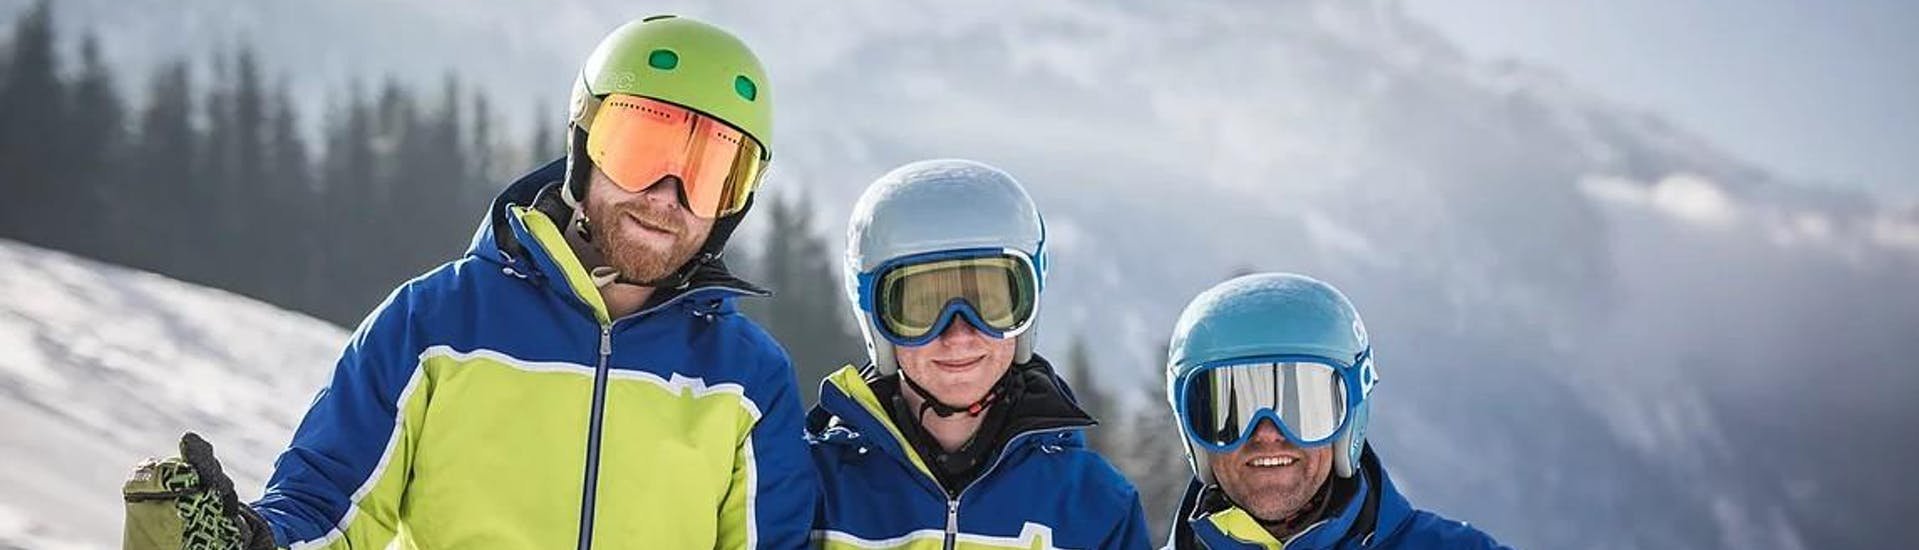 Private Ski Lessons for Kids of All Levels - Full Day